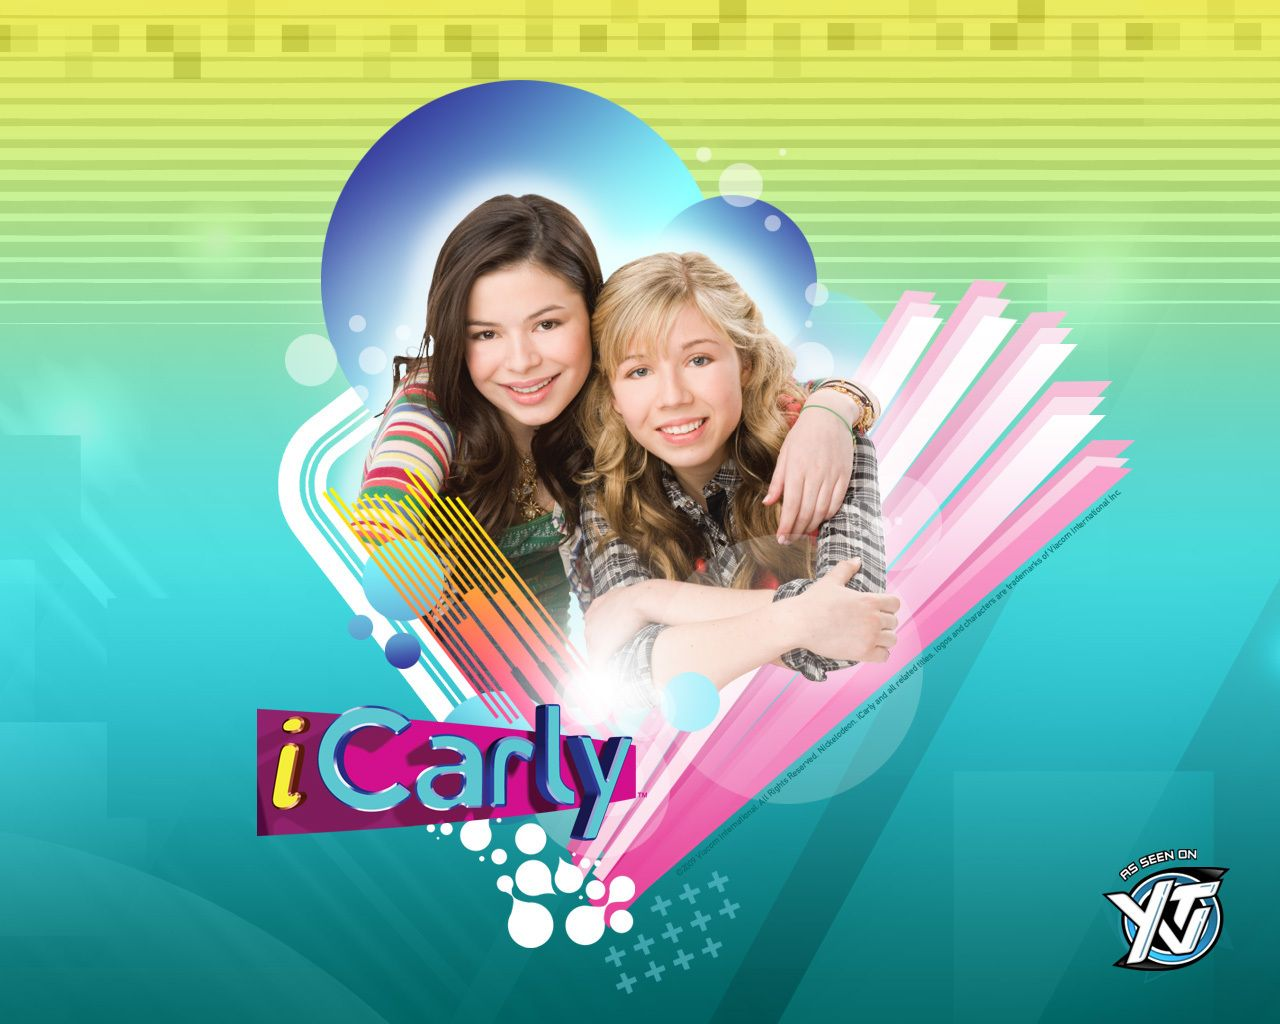 1280x1024 wallpaper 9 - iCarly Wallpaper (5380037) - Fanpop